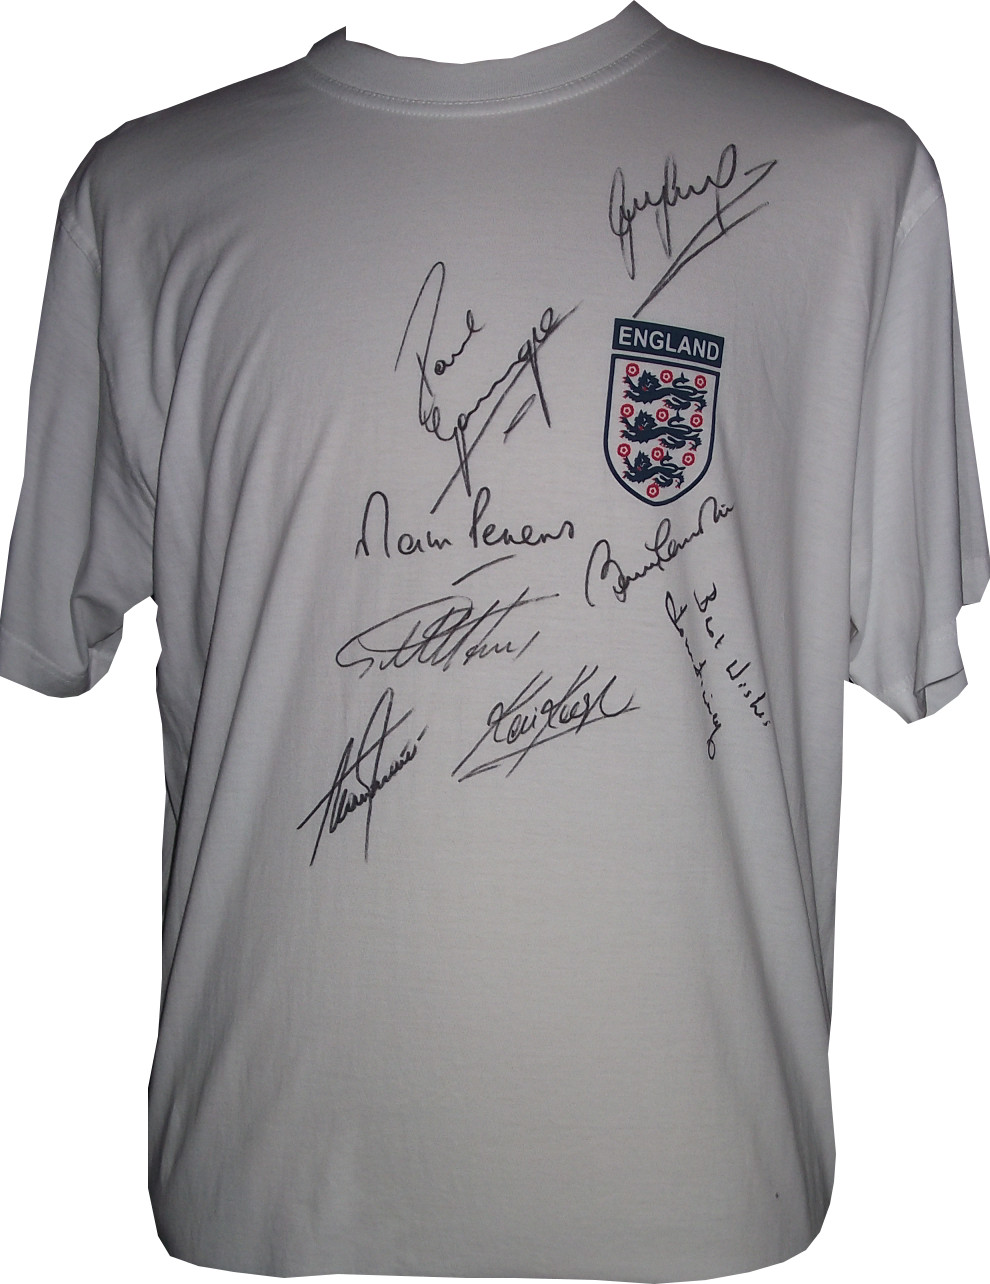 England Shirt Signed x 8 Legends Lineker, Gazza, Hurst, Finney, Peters, Keegan, Shearer & Bobby Charlton